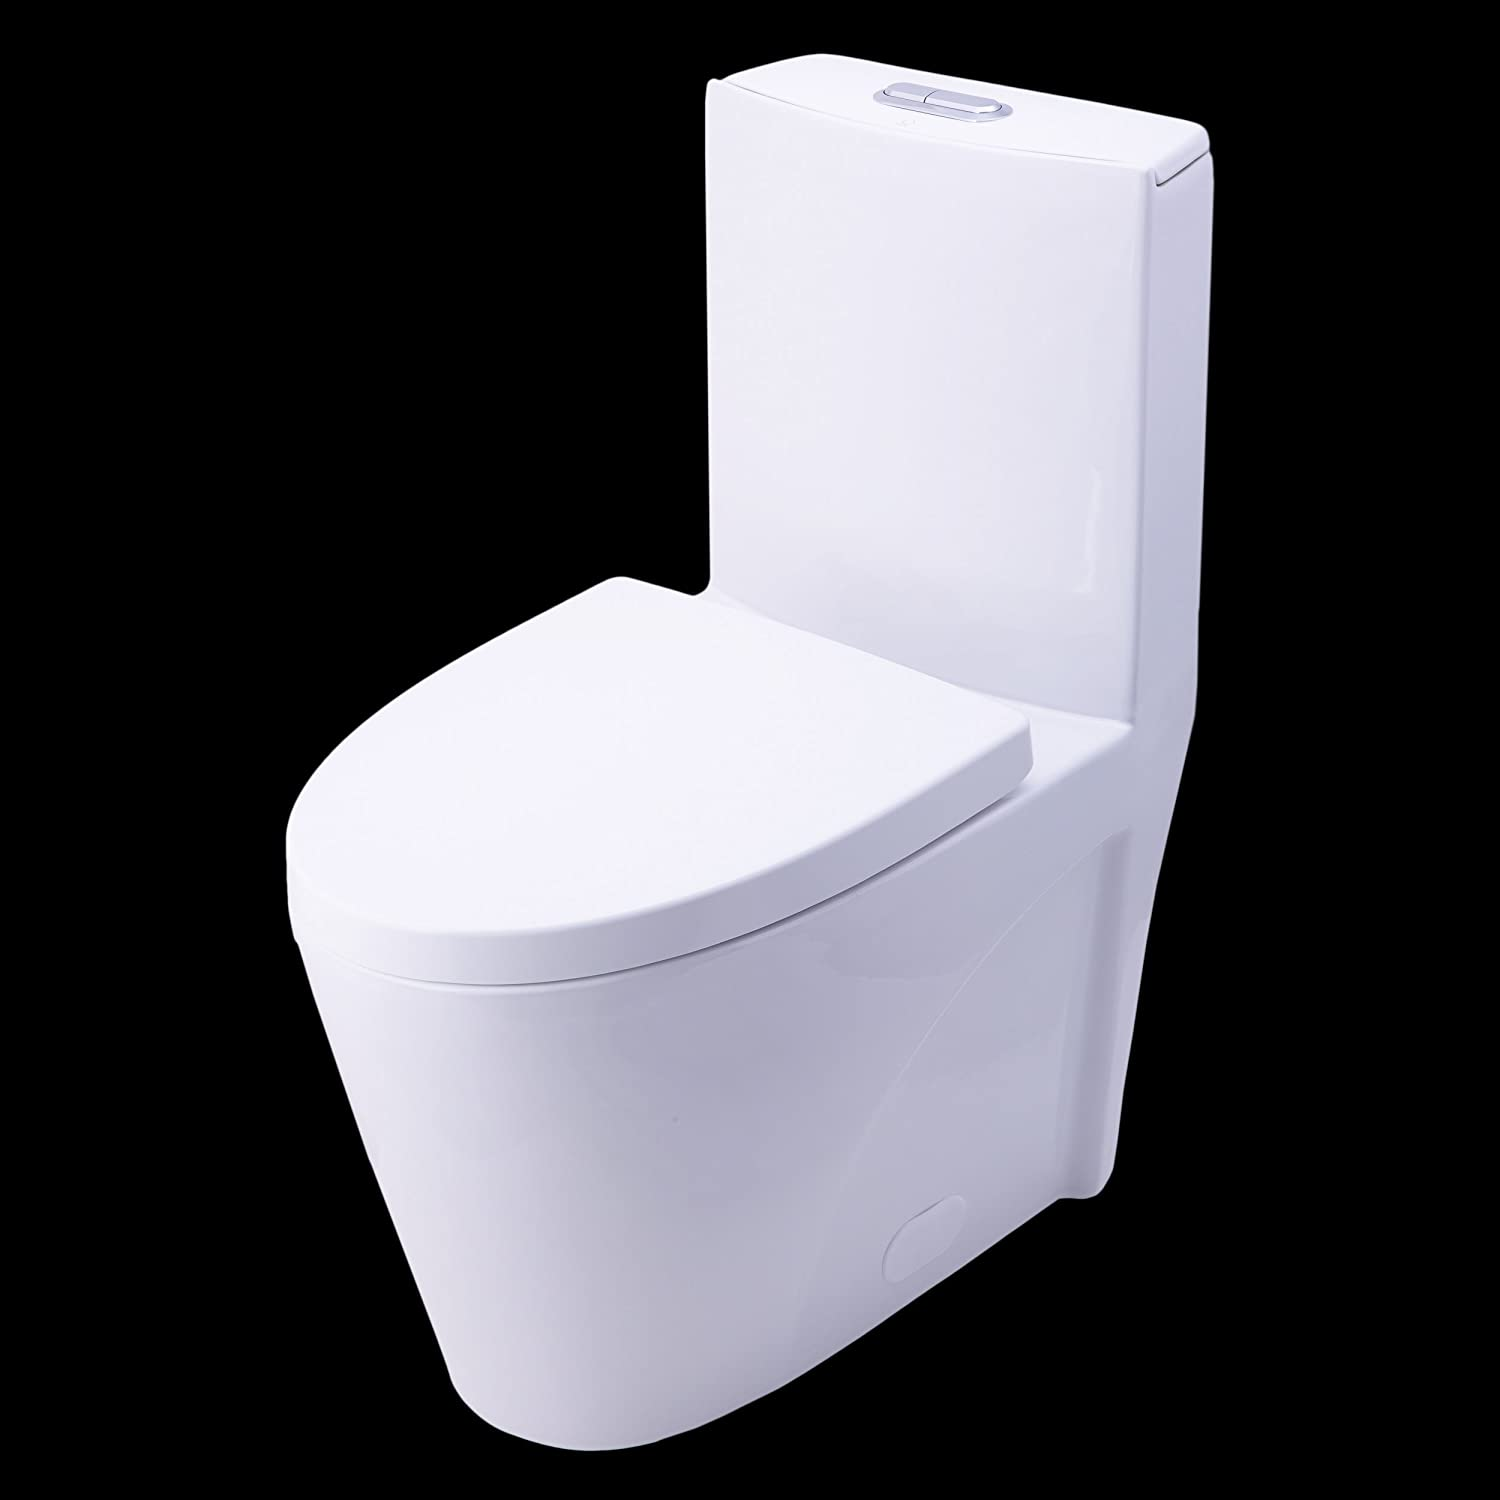 Best toilet on the market reviews - Features